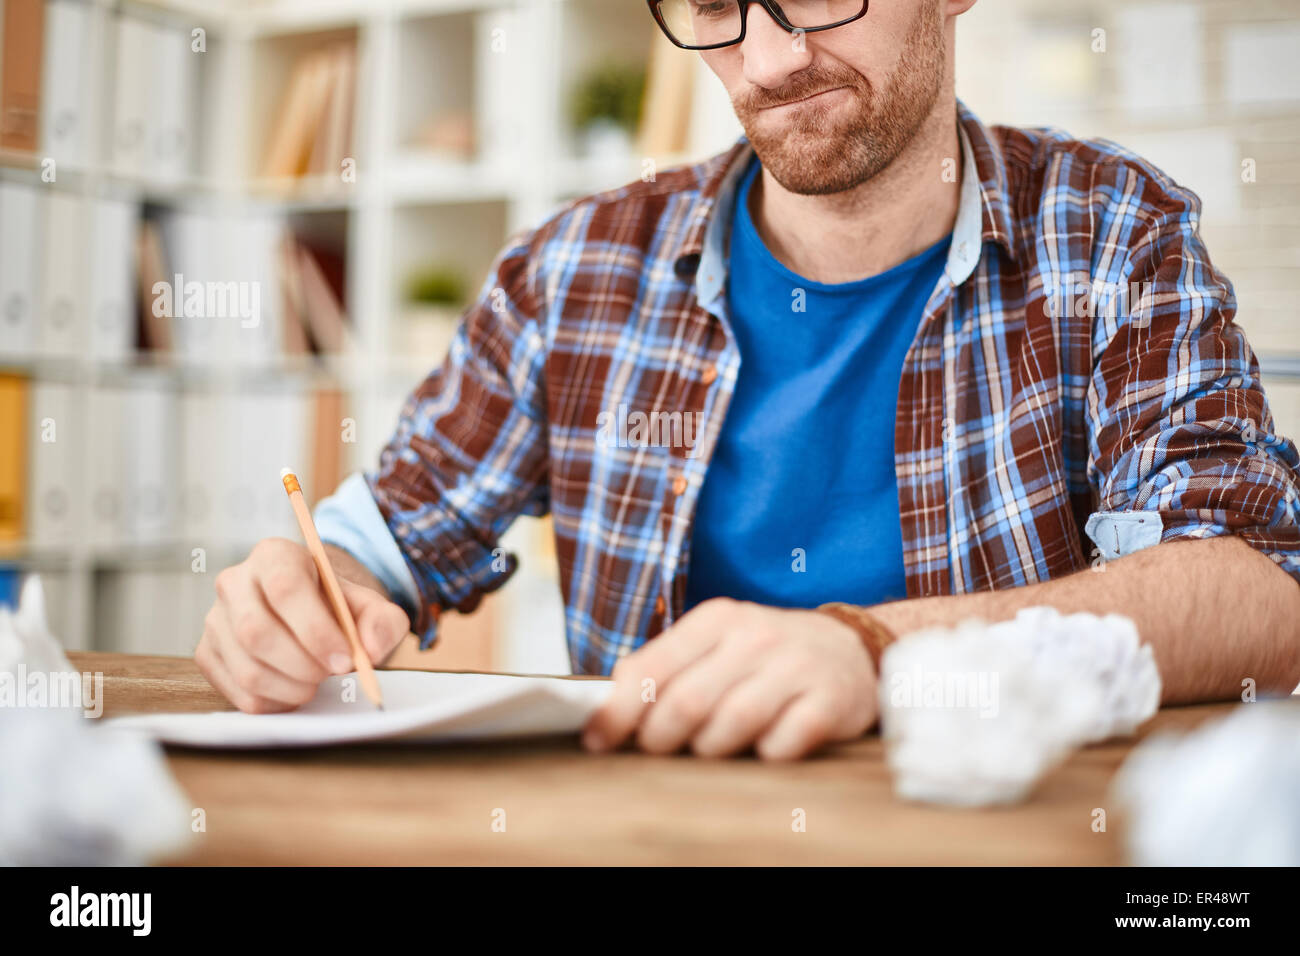 Young businessman with pencil writing down his ideas with crumpled sheets near by - Stock Image